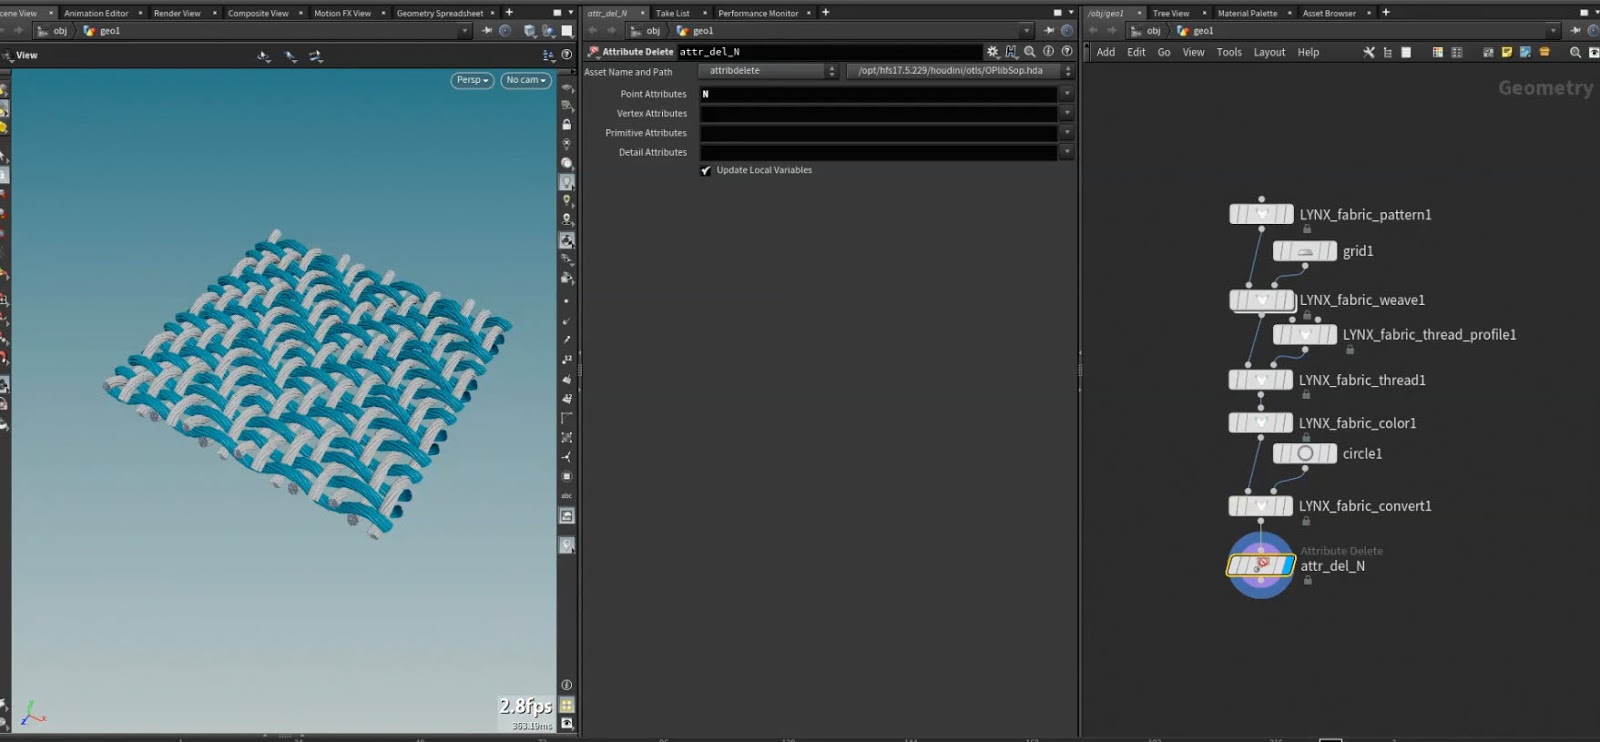 Download LYNX v1 0 for Houdini | Free Fabric Tool by Luca Scheller